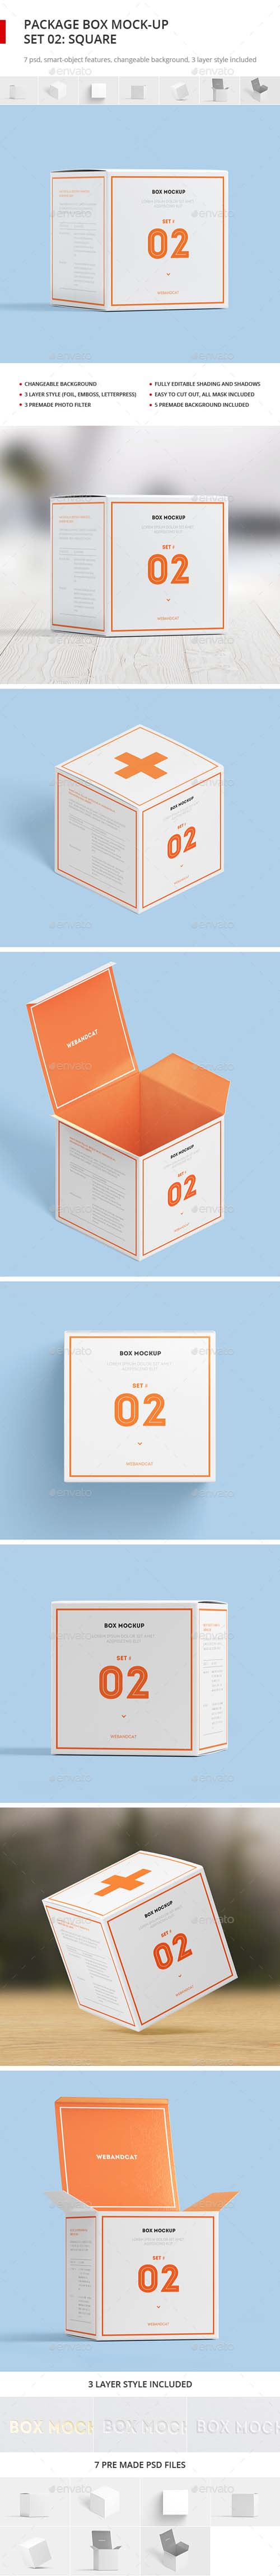 Package Box Mock-up, Set 2: Square Box 17728710